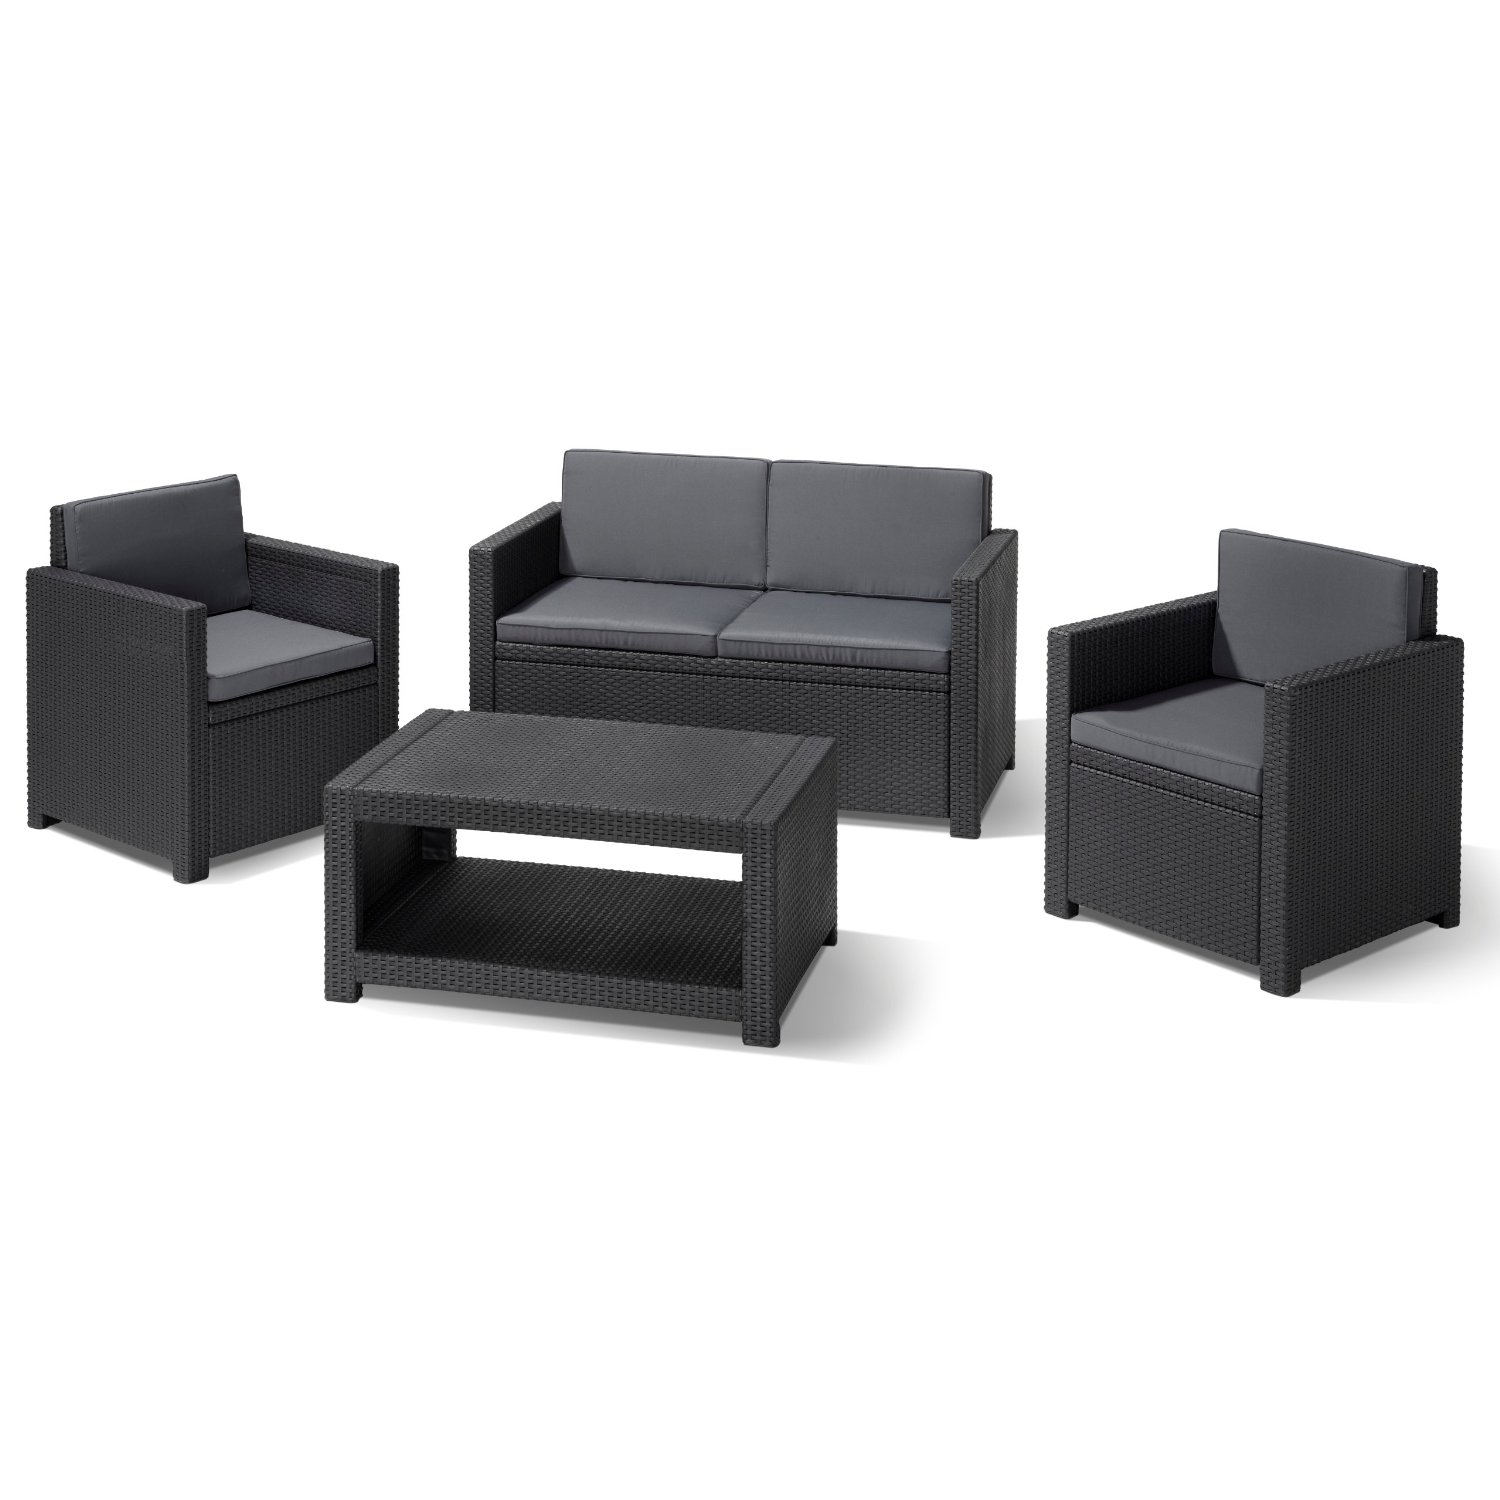 Lounge Sofa Allibert Lounge Gartenmöbel Allibert 183313 Lounge Set Monaco Set